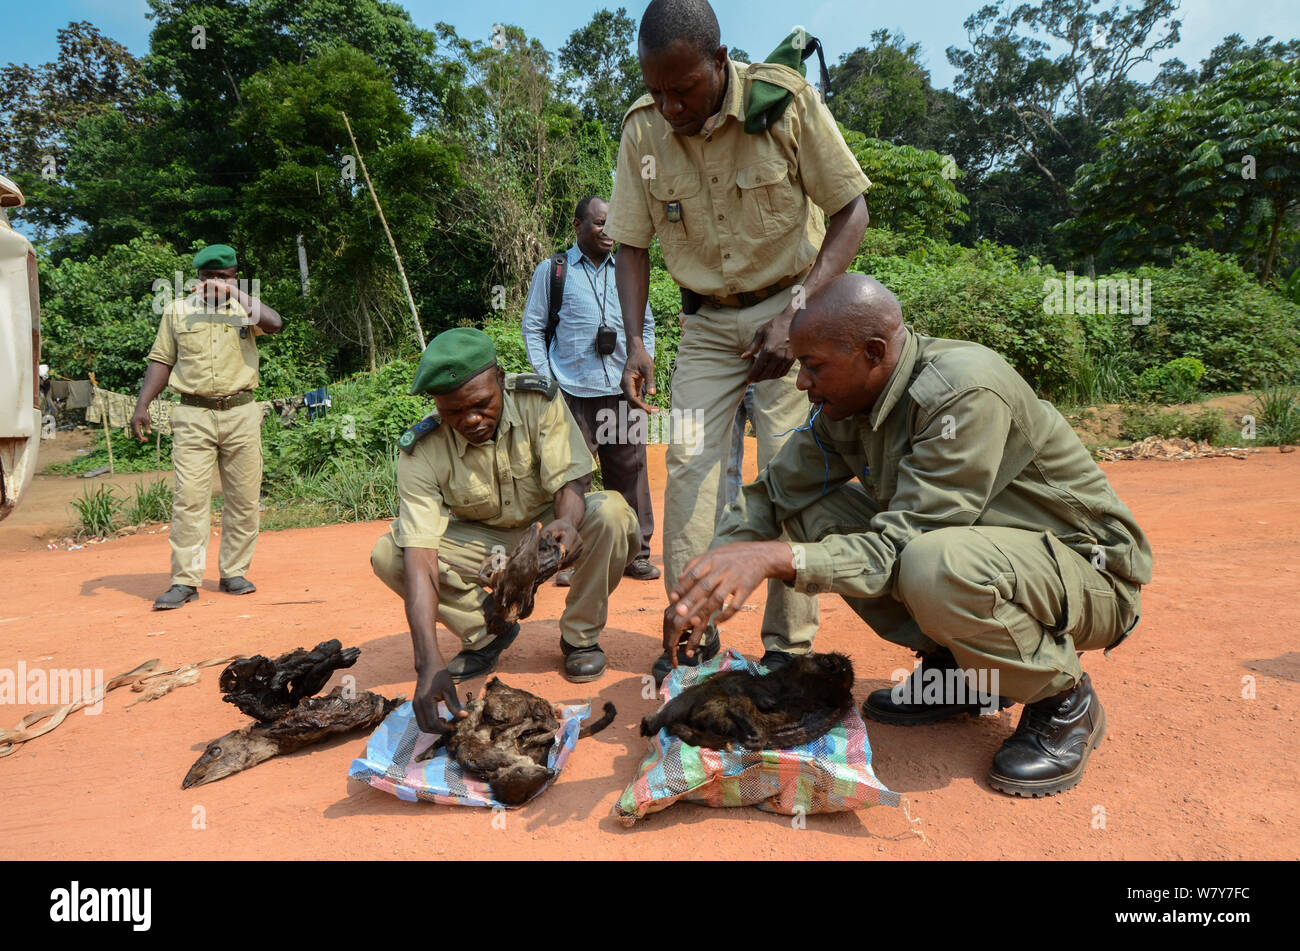 Guards with confiscated bushmeat including carcasses of duiker and monkey. Yengo Eco Guard control point, Odzala-Kokoua National Park. Republic of Congo (Congo-Brazzaville), Africa, June 2013. Stock Photo